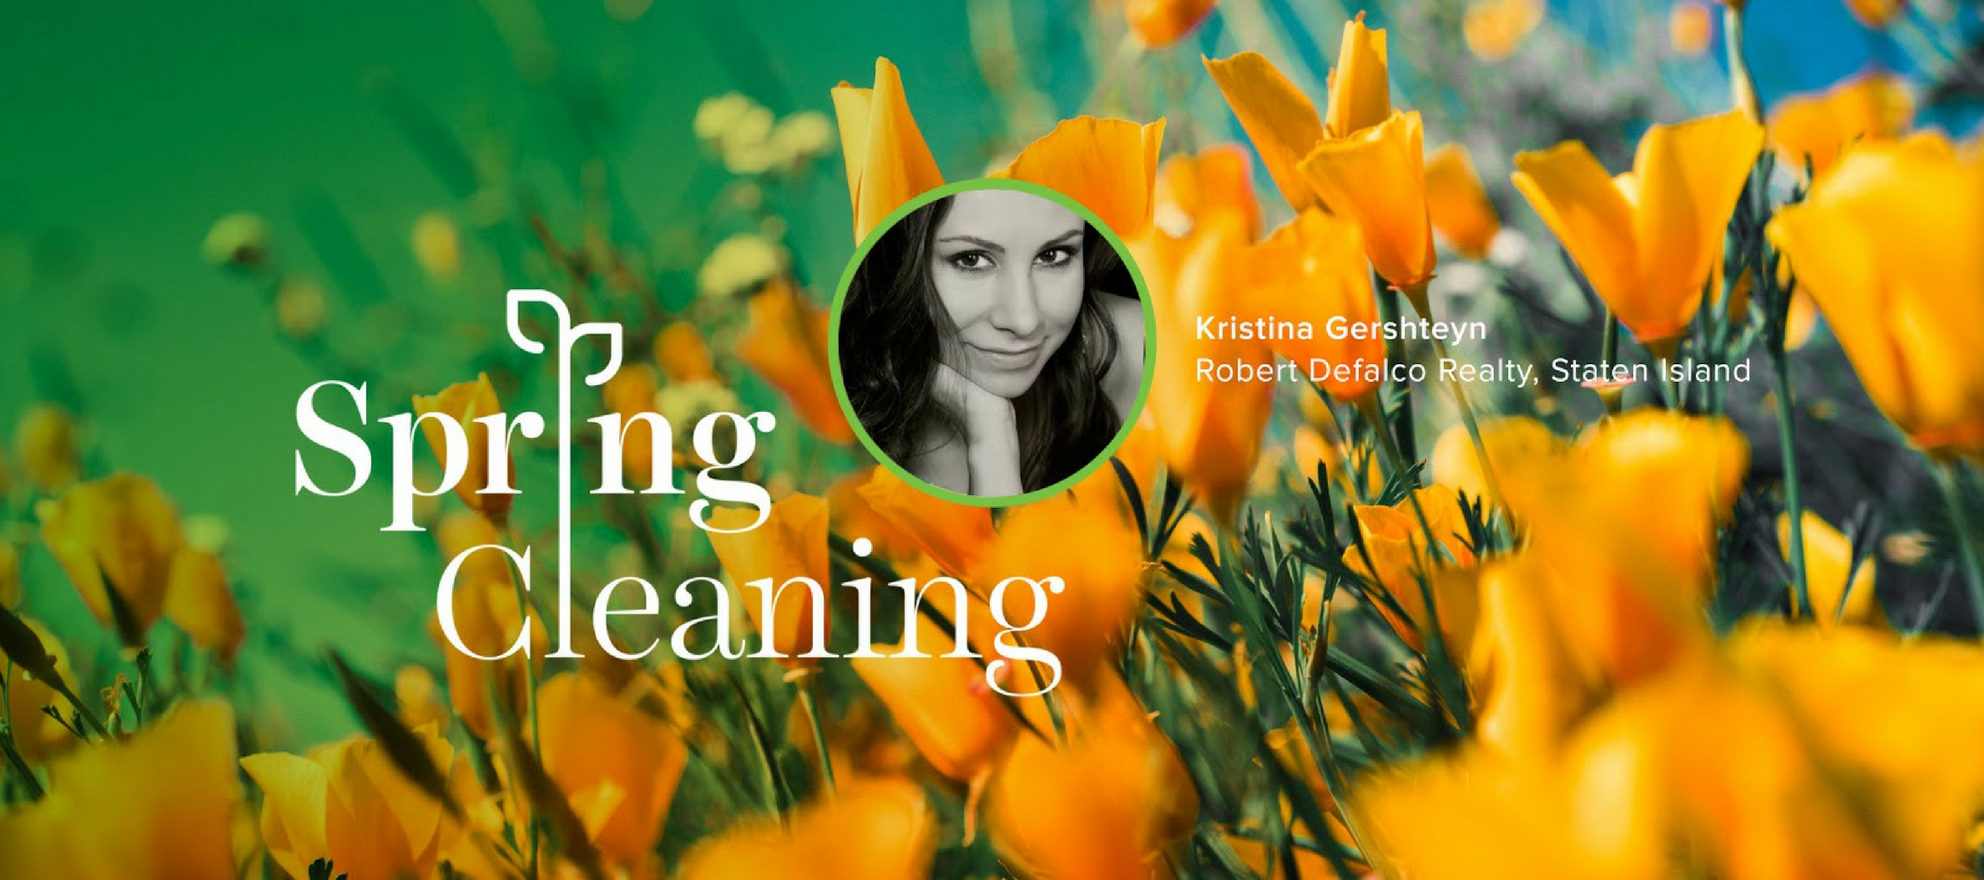 spring cleaning, Kristina Gershteyn, never pay for leads